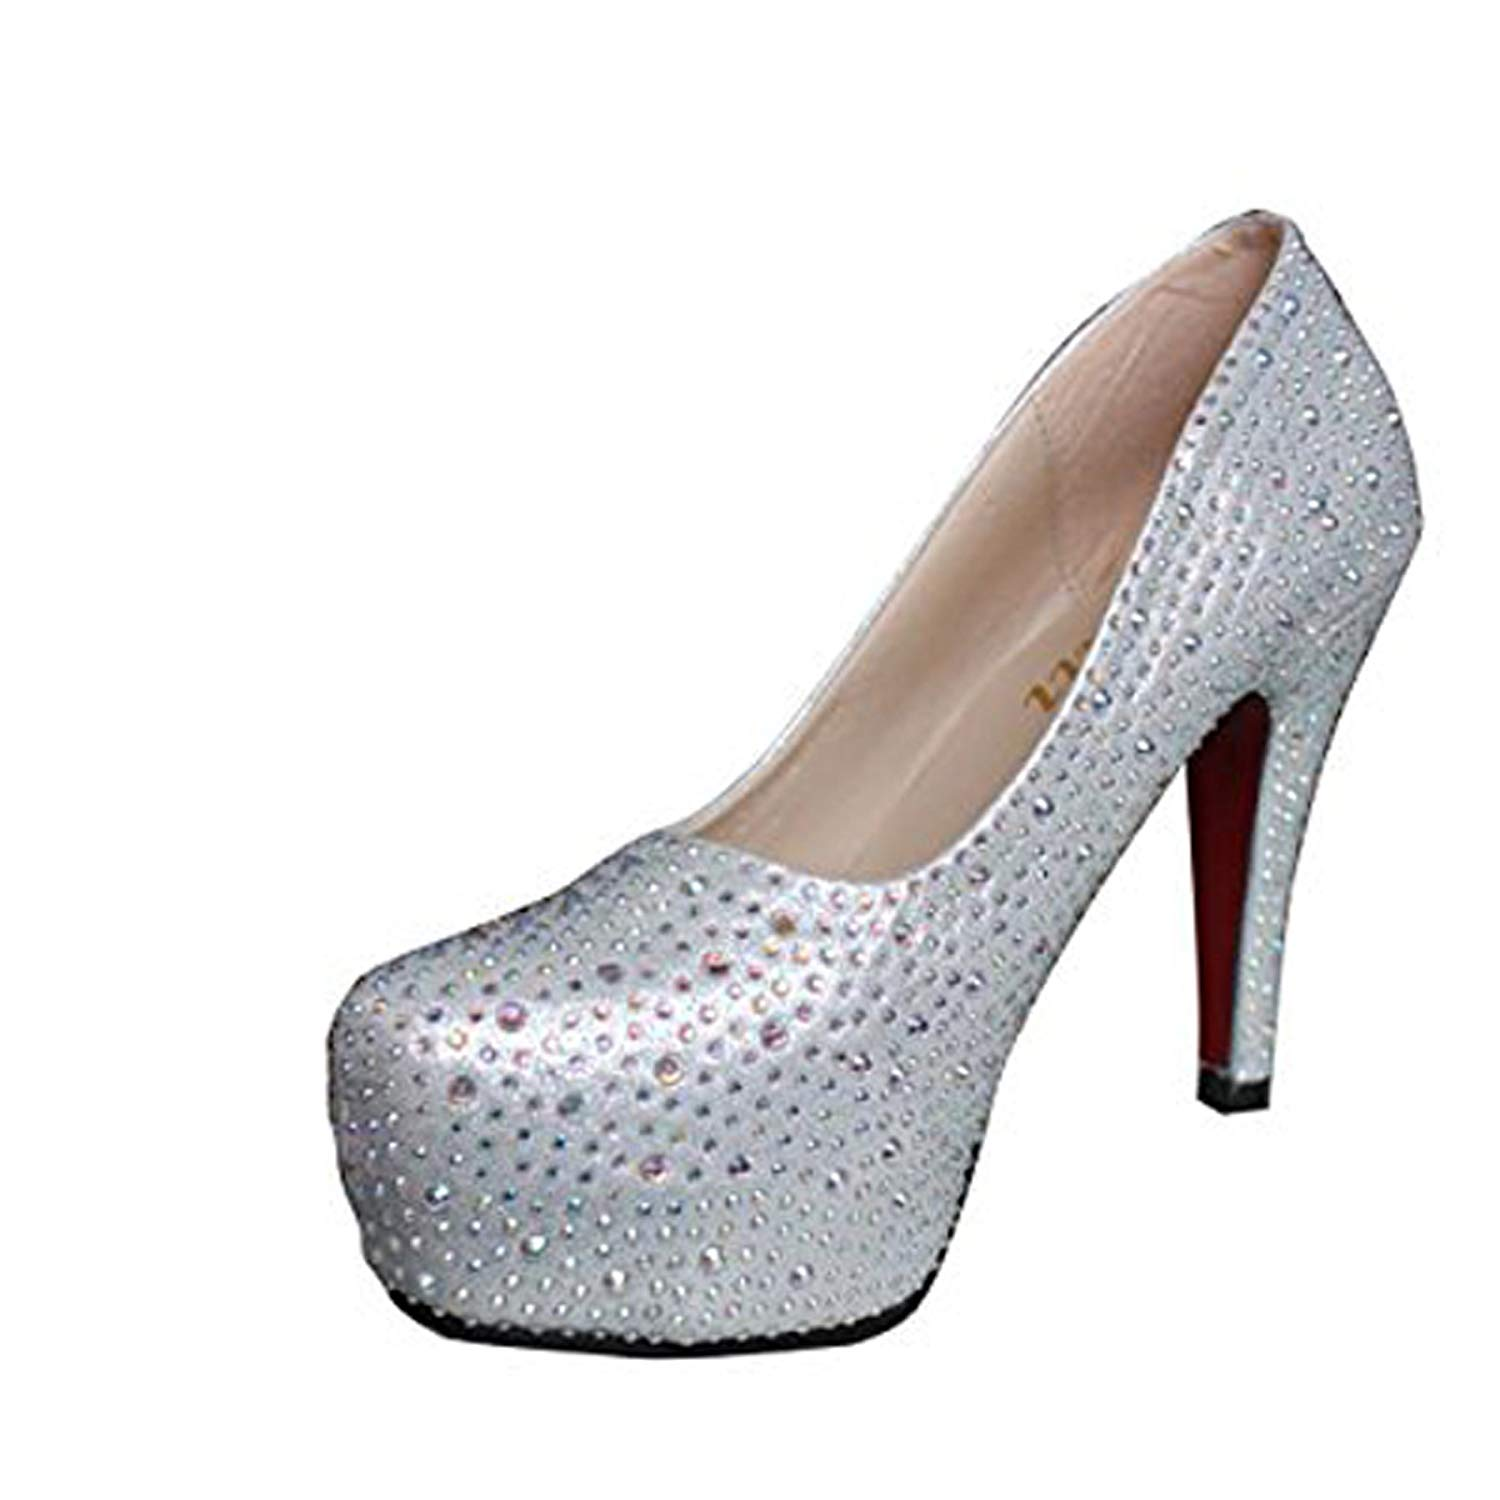 Gaorui Women Glitter Rhinestones Studded Pumps Platform Wedge high heel Shoes Silver Red